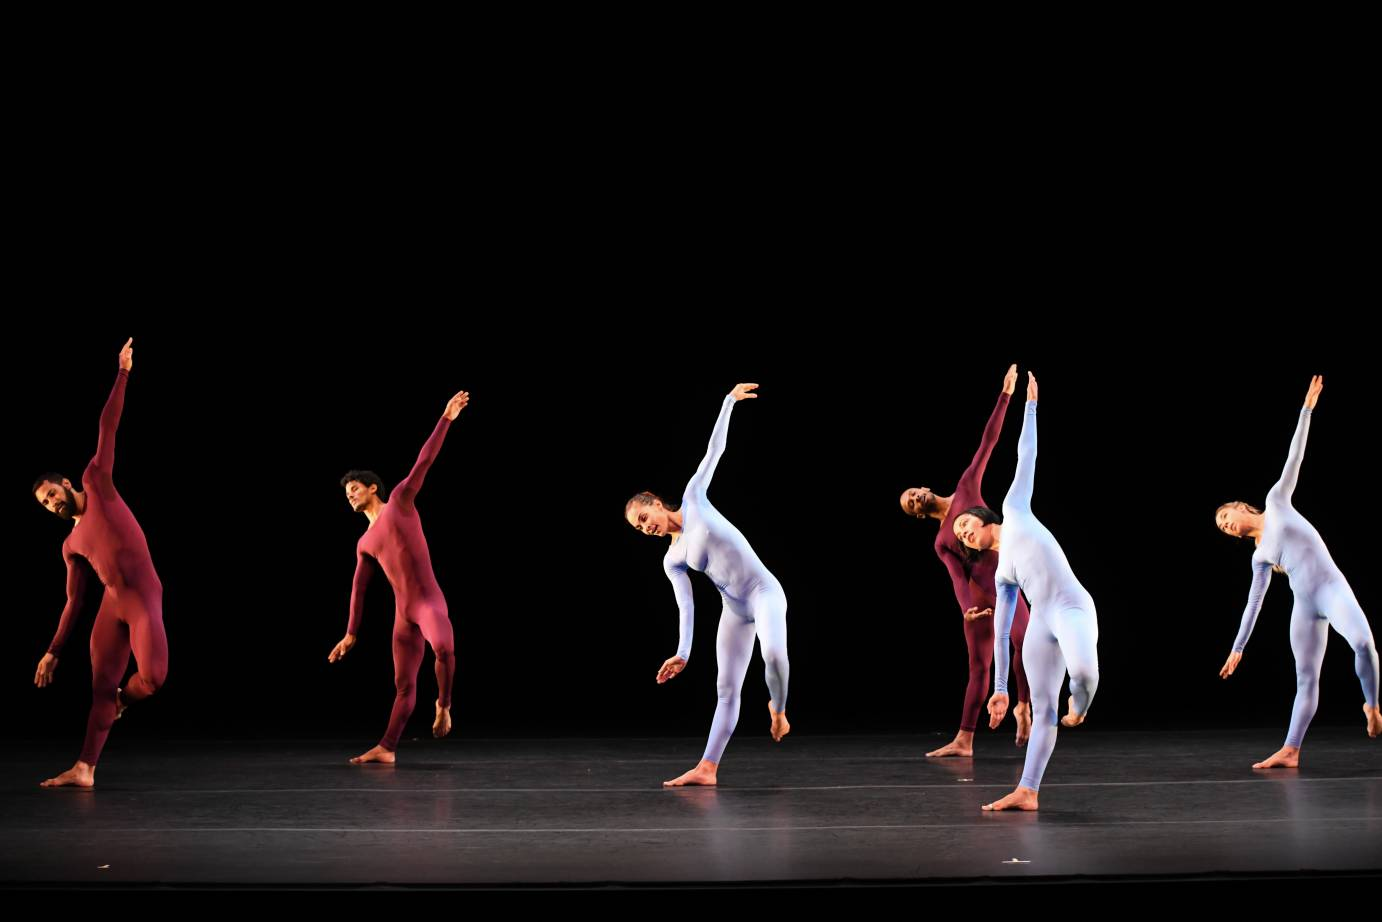 Dancers in purplish unitards tip their bodies sideways